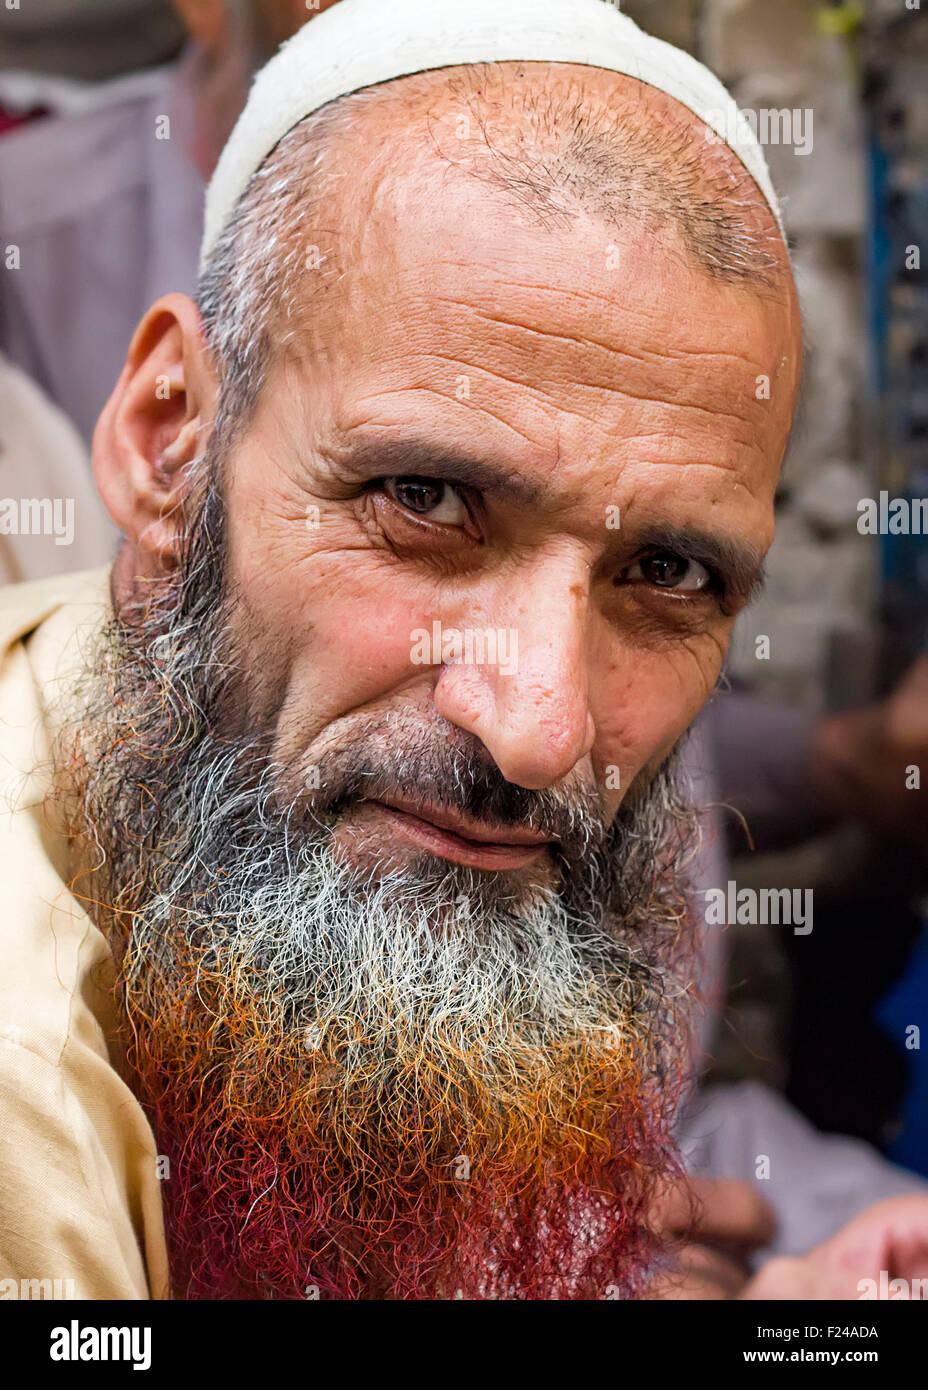 Pashto refugee in Pakistan with henna dyed beard. Many Muslim men dye their beard with henna especially during Ramadan. - Stock Image